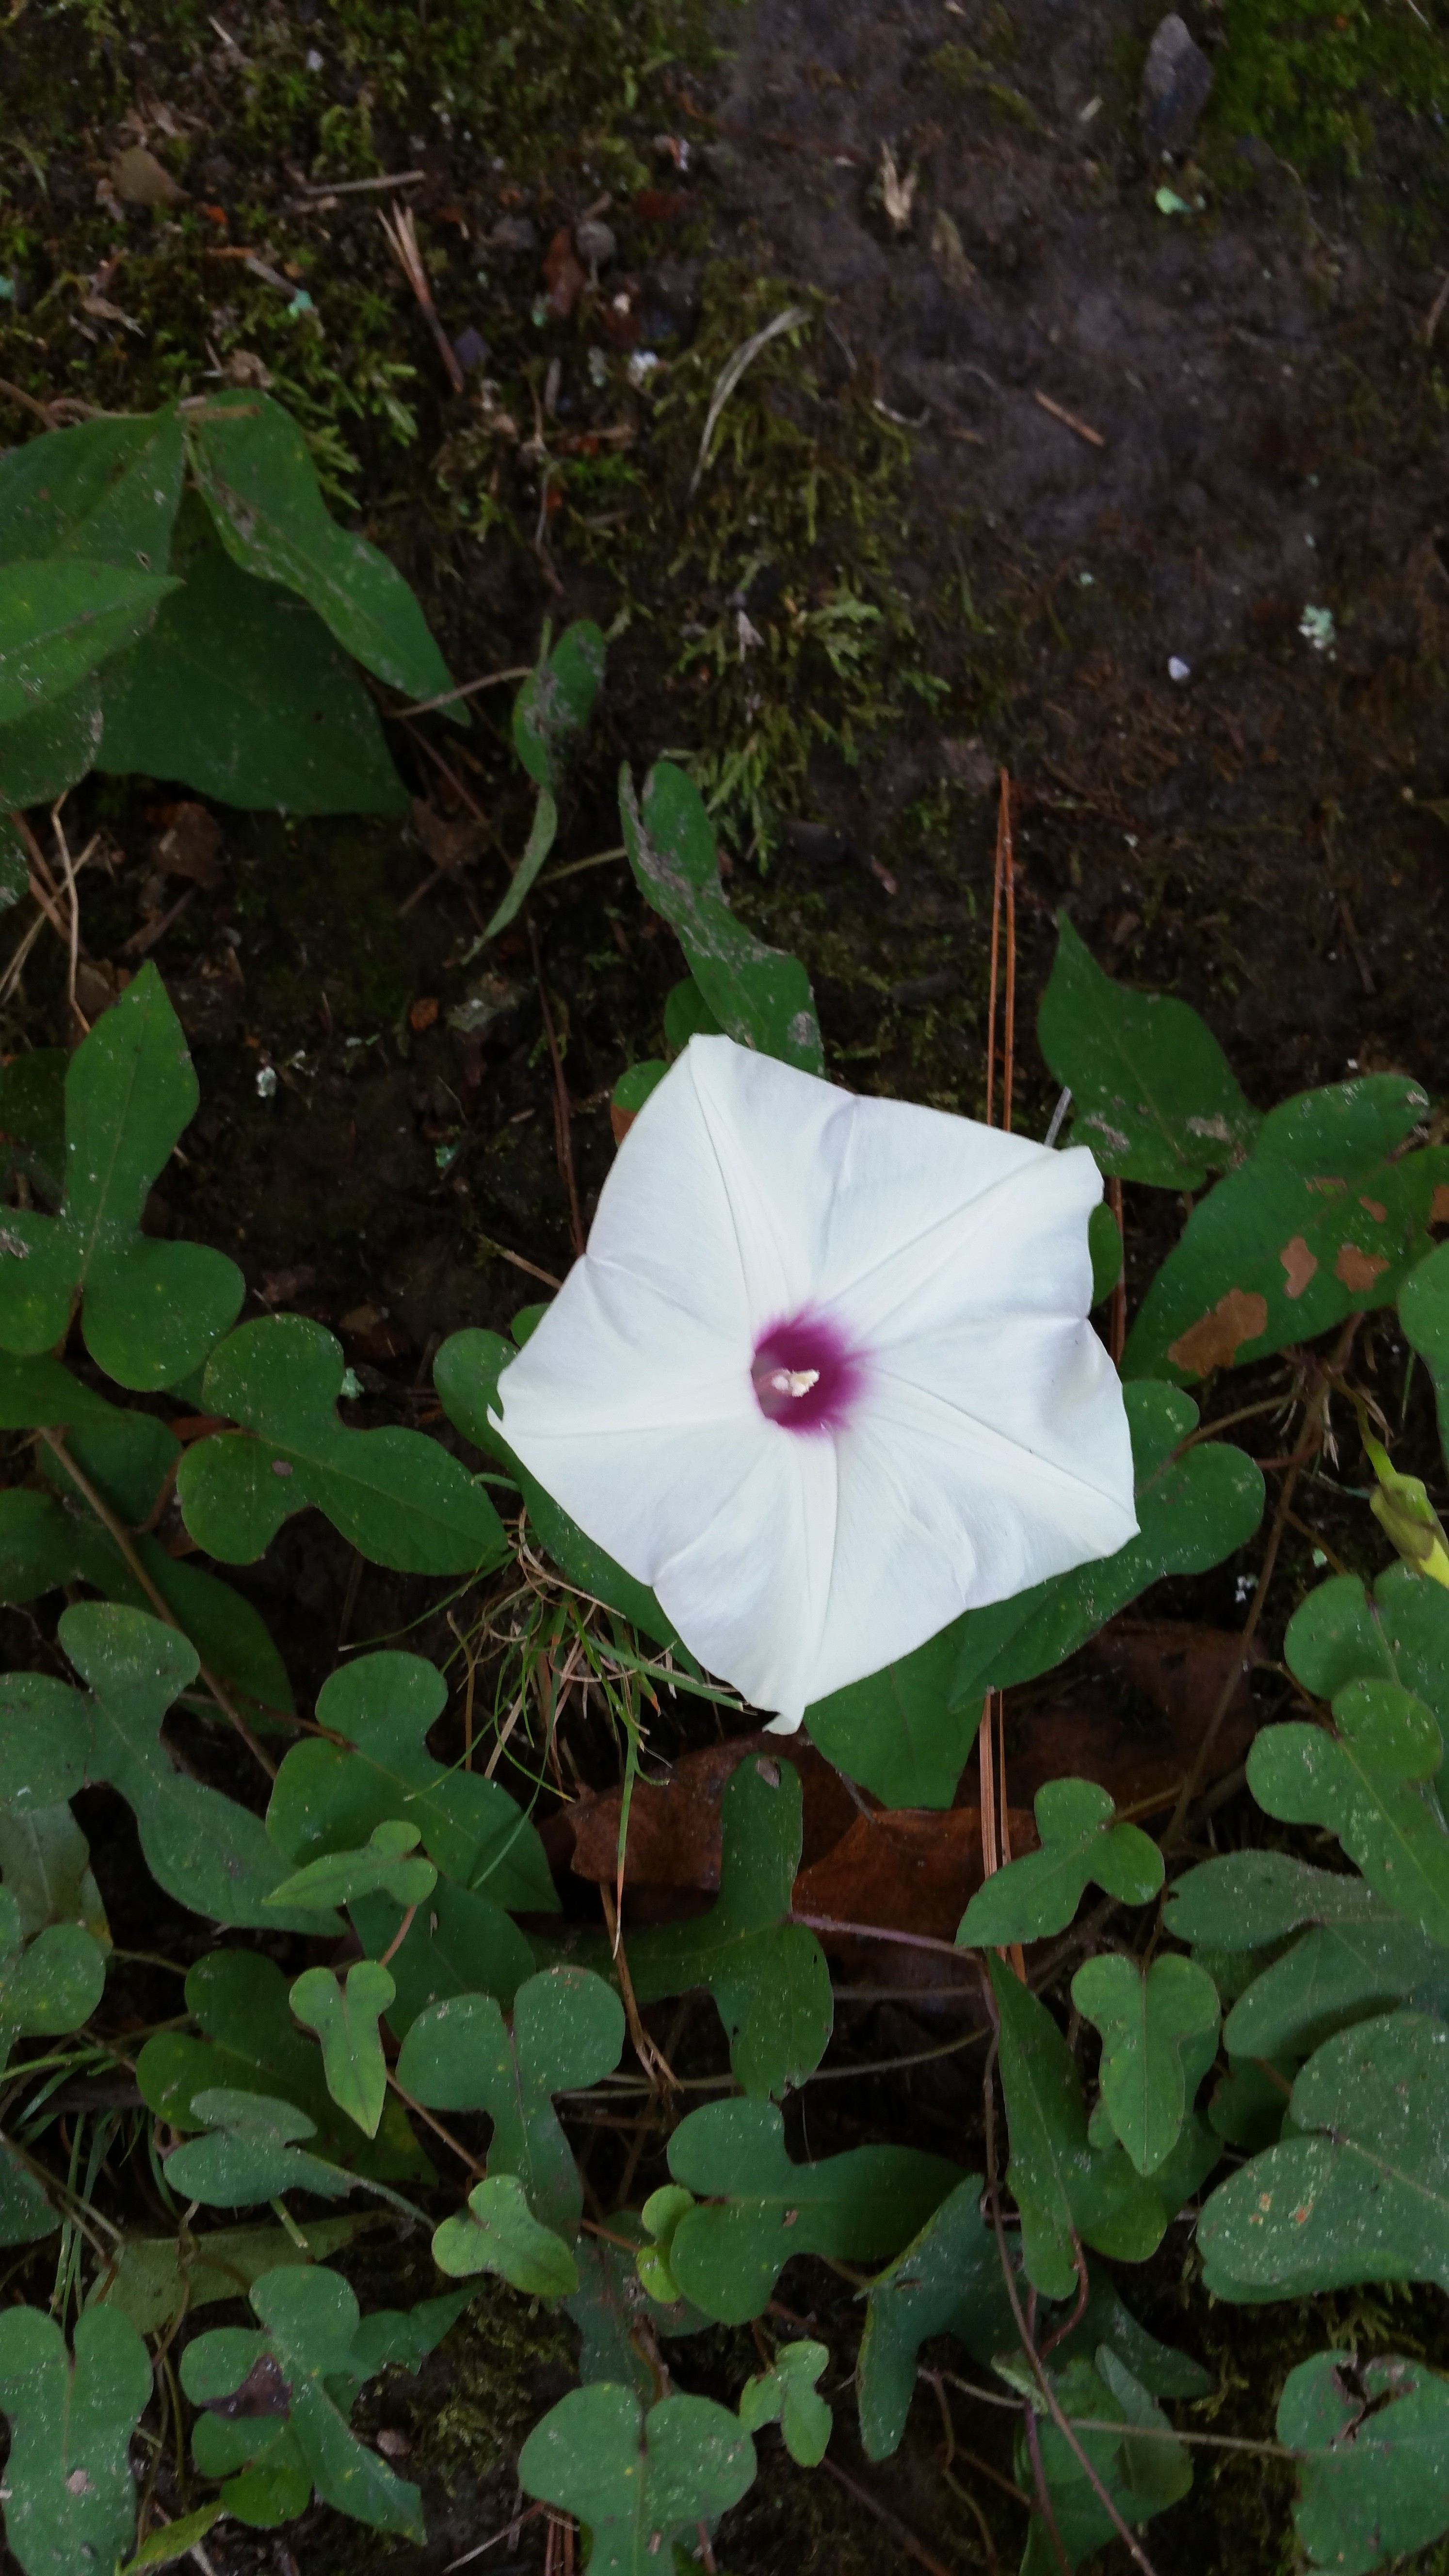 Wild potato vine aleksanders quest for botanical mastery the wild potato grows large 5 part flowers at the end of vines with the individual petals fused into a single funnel like structure the flower is white mightylinksfo